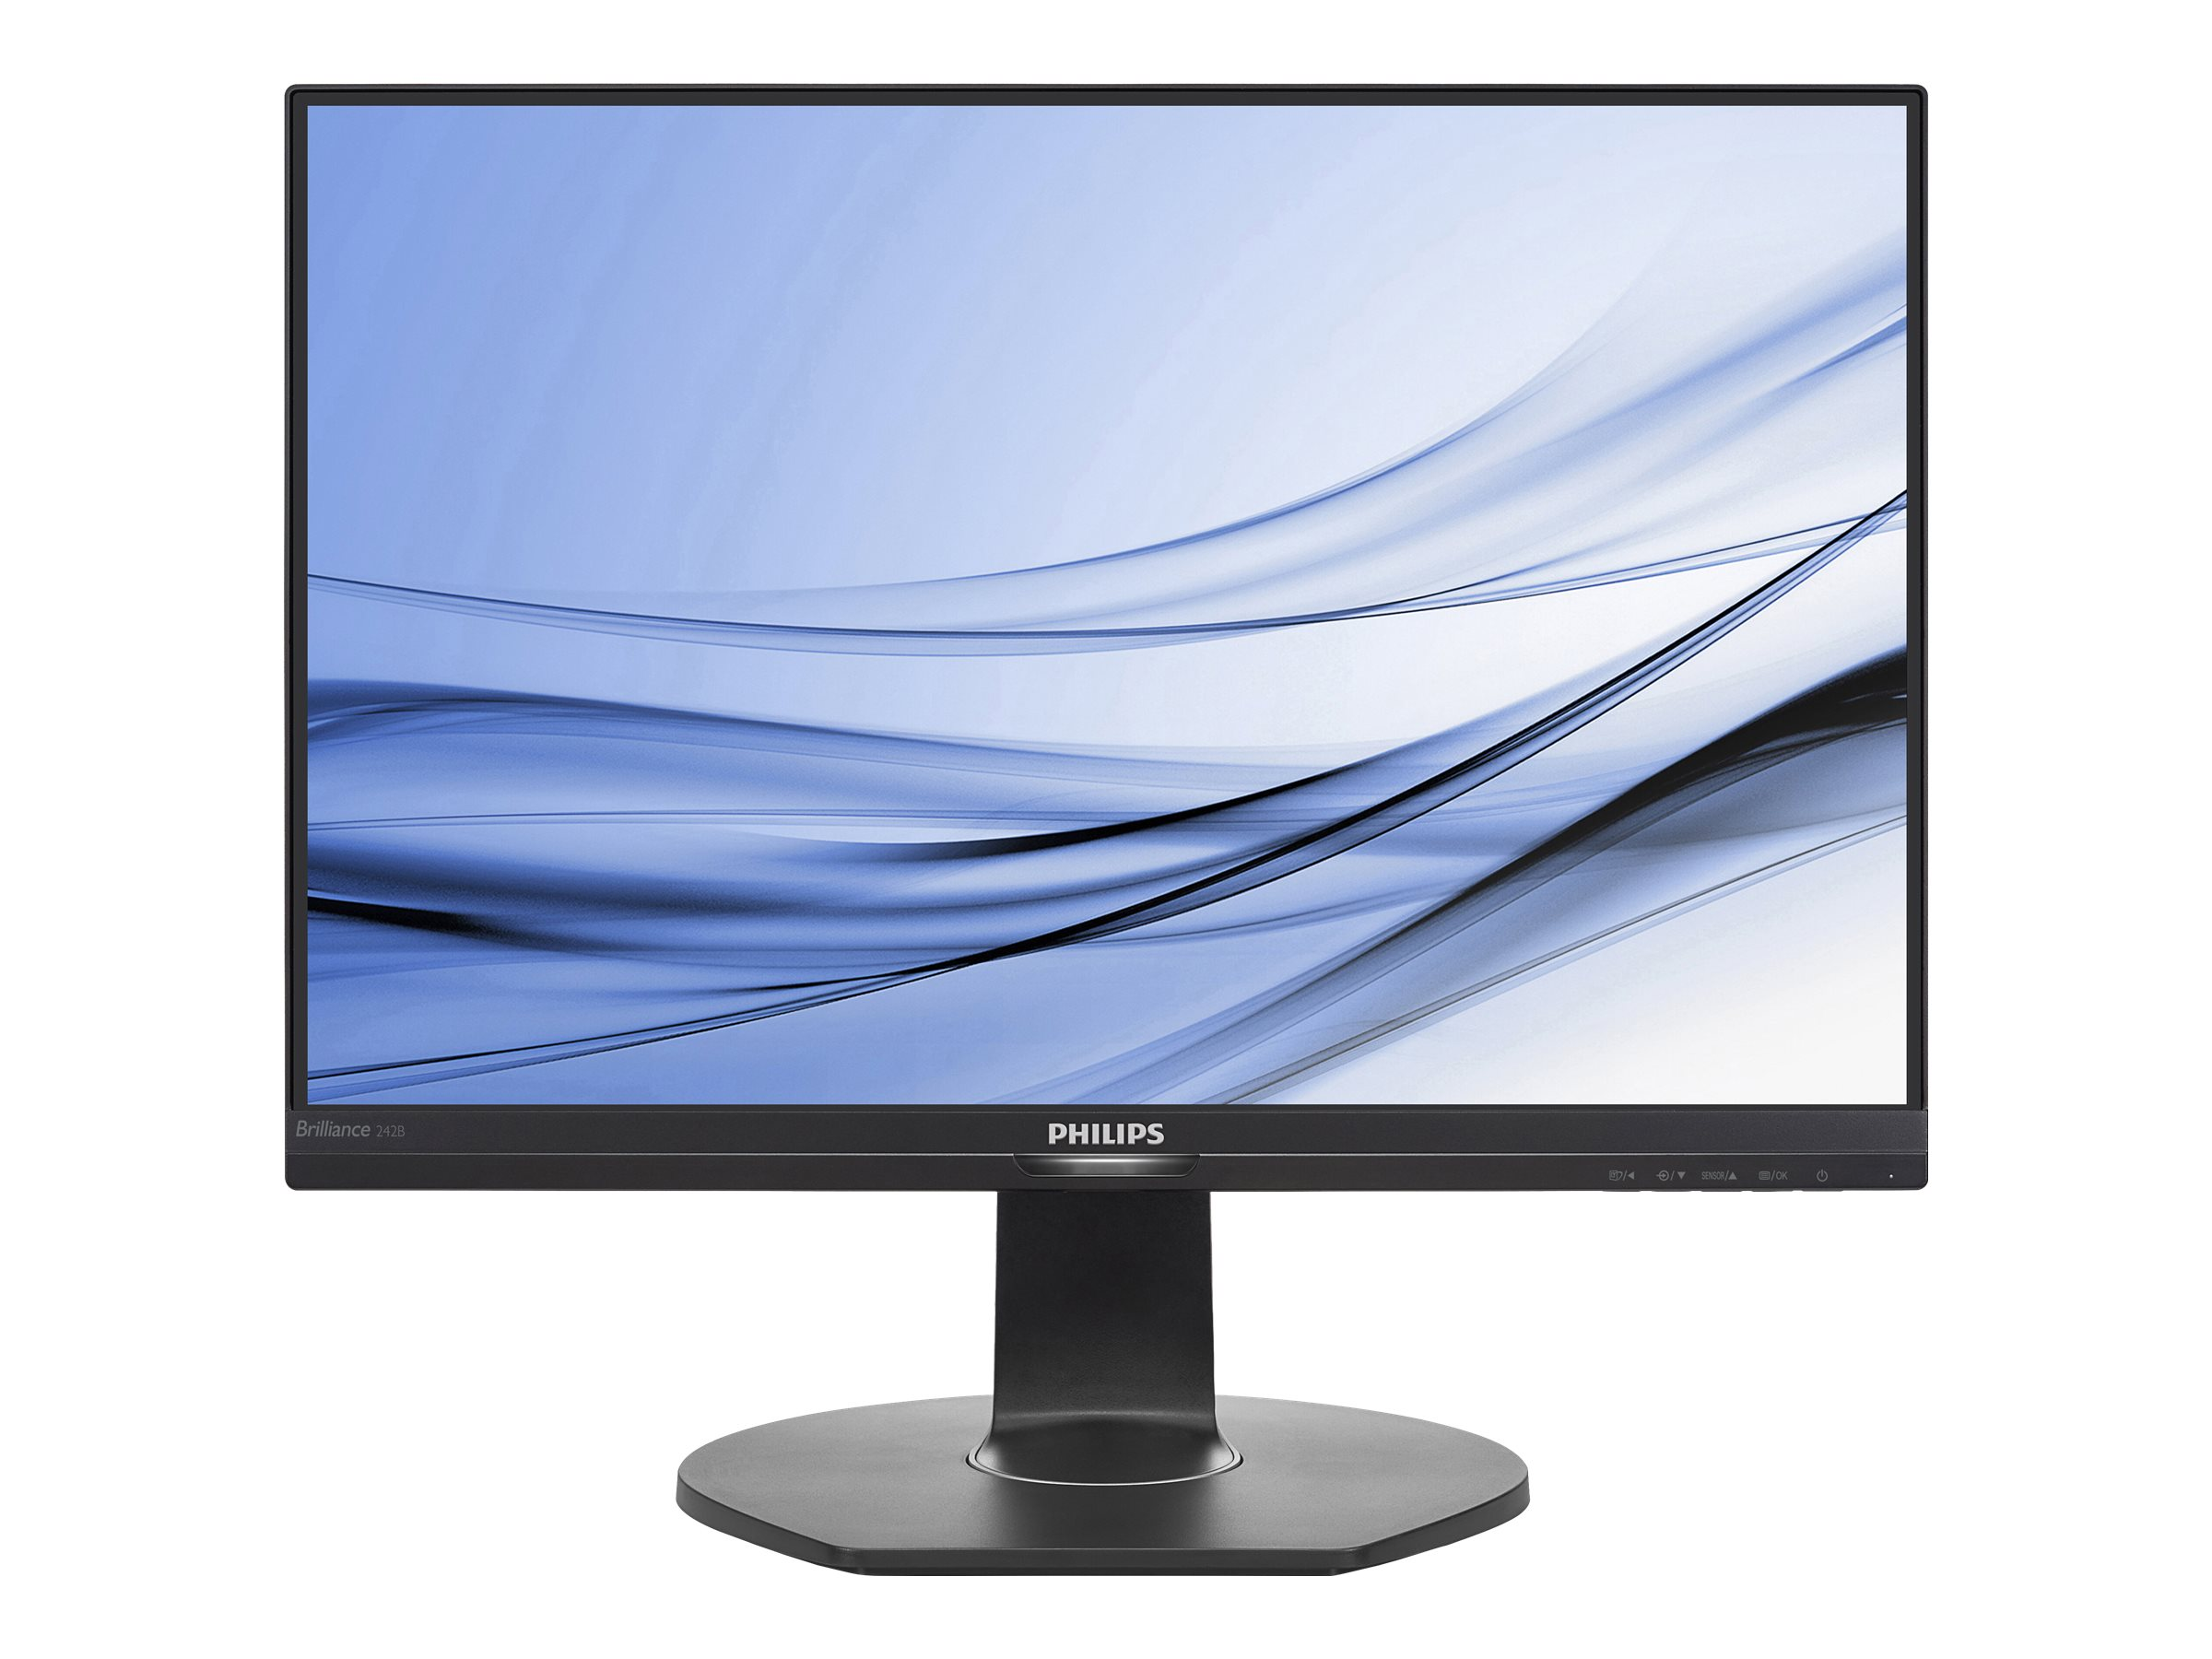 Philips Brilliance B-line 242B7QPTEB - LED-Monitor - 61 cm (24